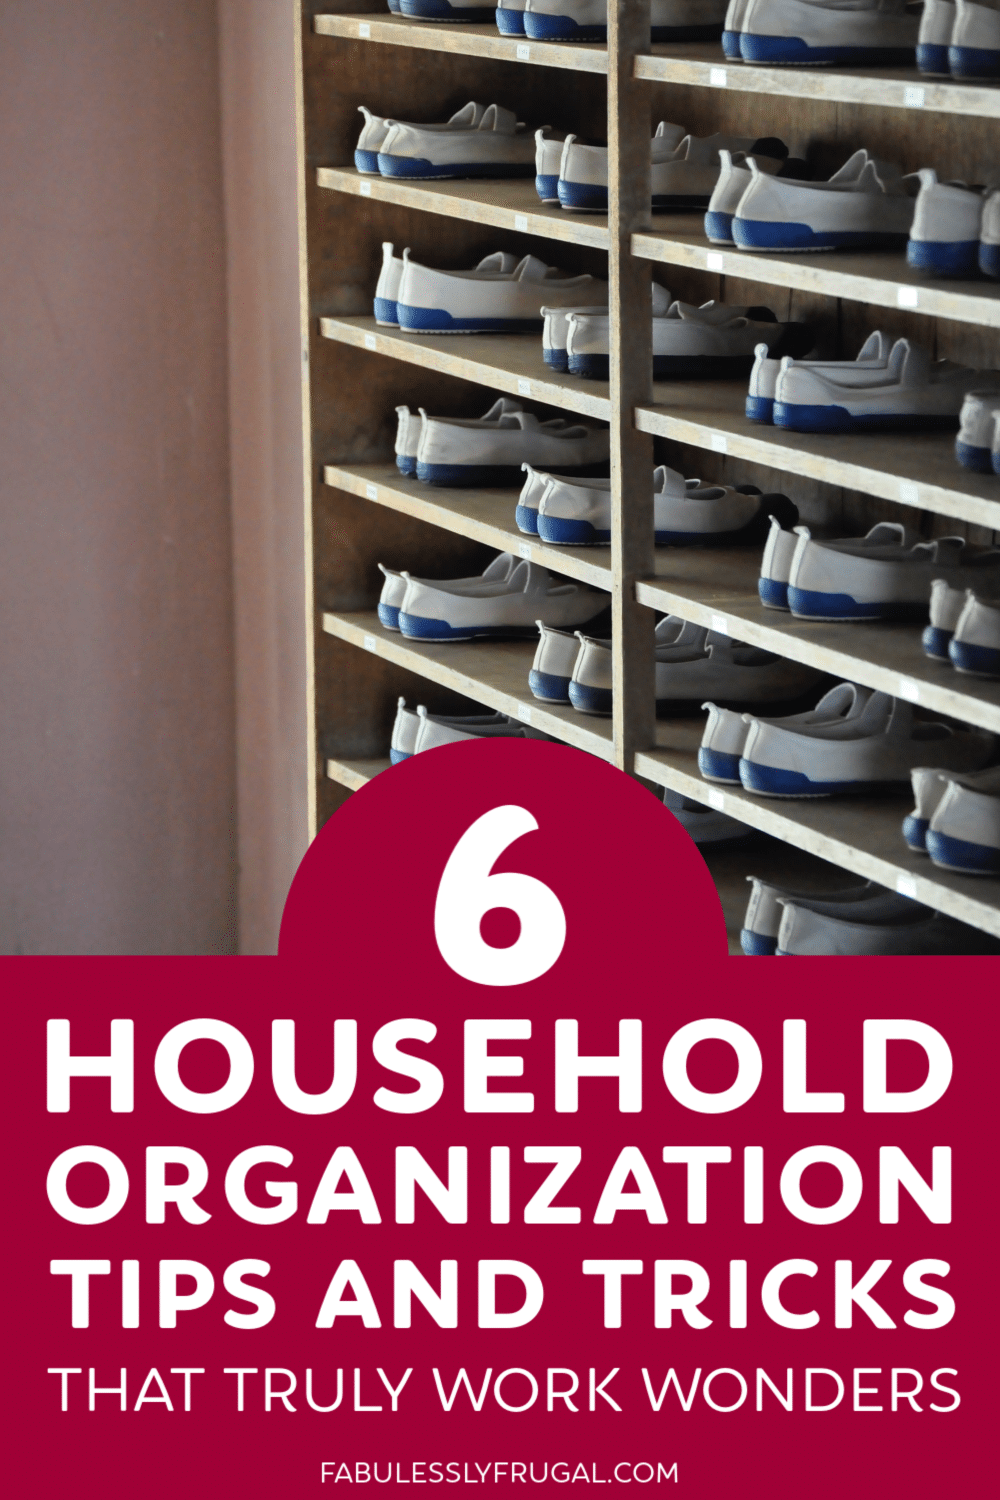 6 Home Organization Tips: Organize Your Home Once and For All